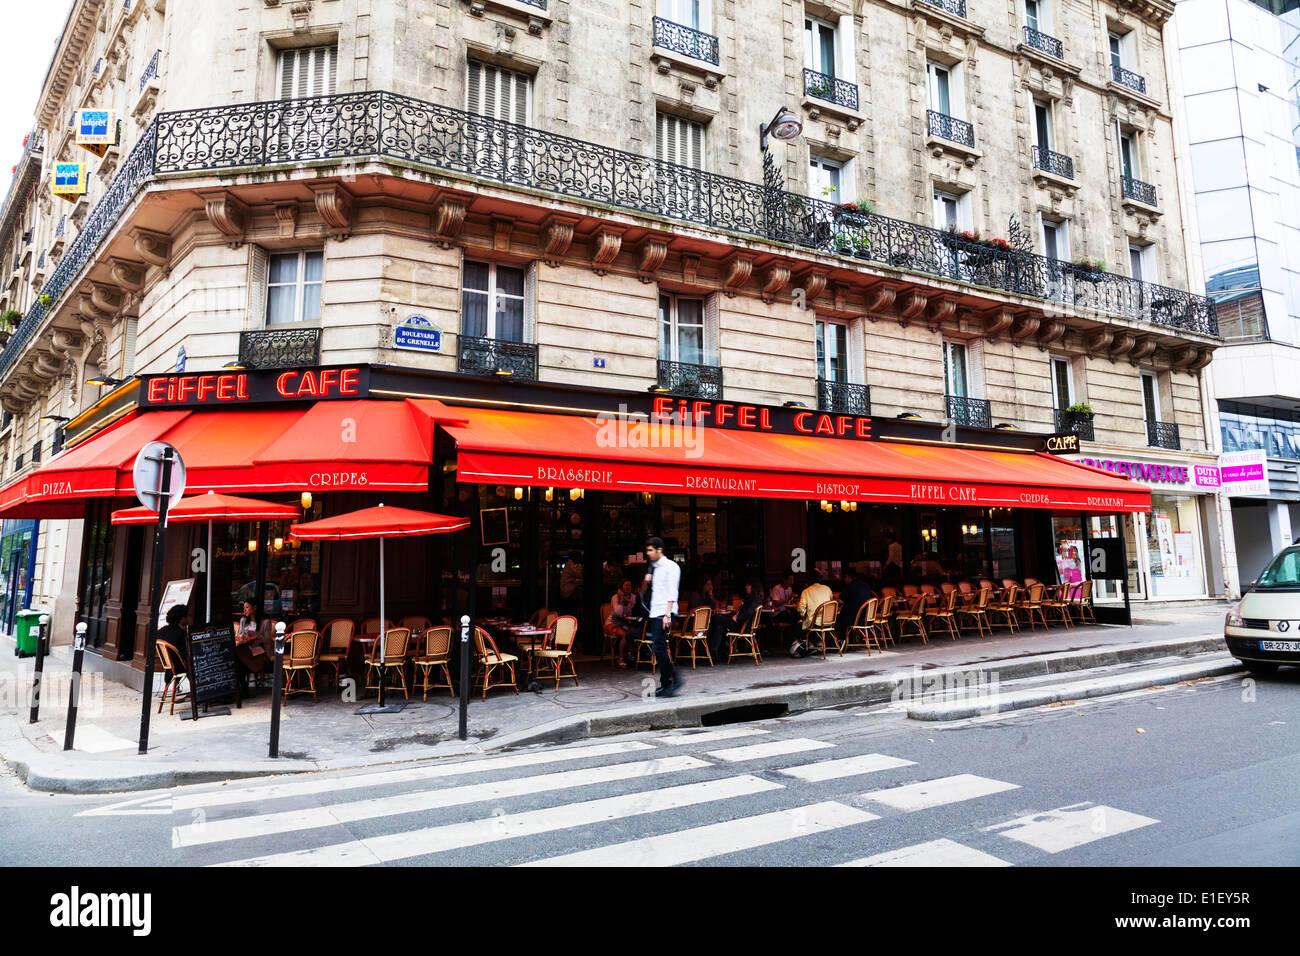 Eiffel cafe bistro typical brasserie close to the Eiffel tower Paris France - Stock Image